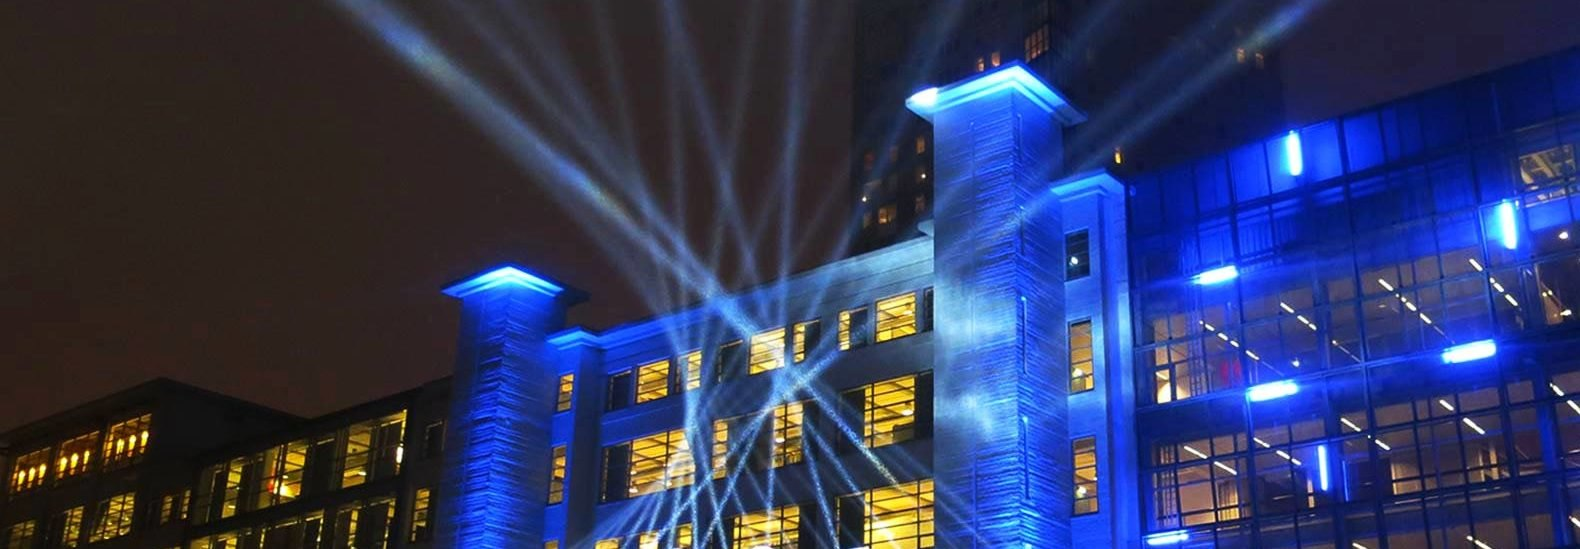 Glow Route Eindhoven Eindhoven S Dazzling Glow Festival Blends Technology And Design